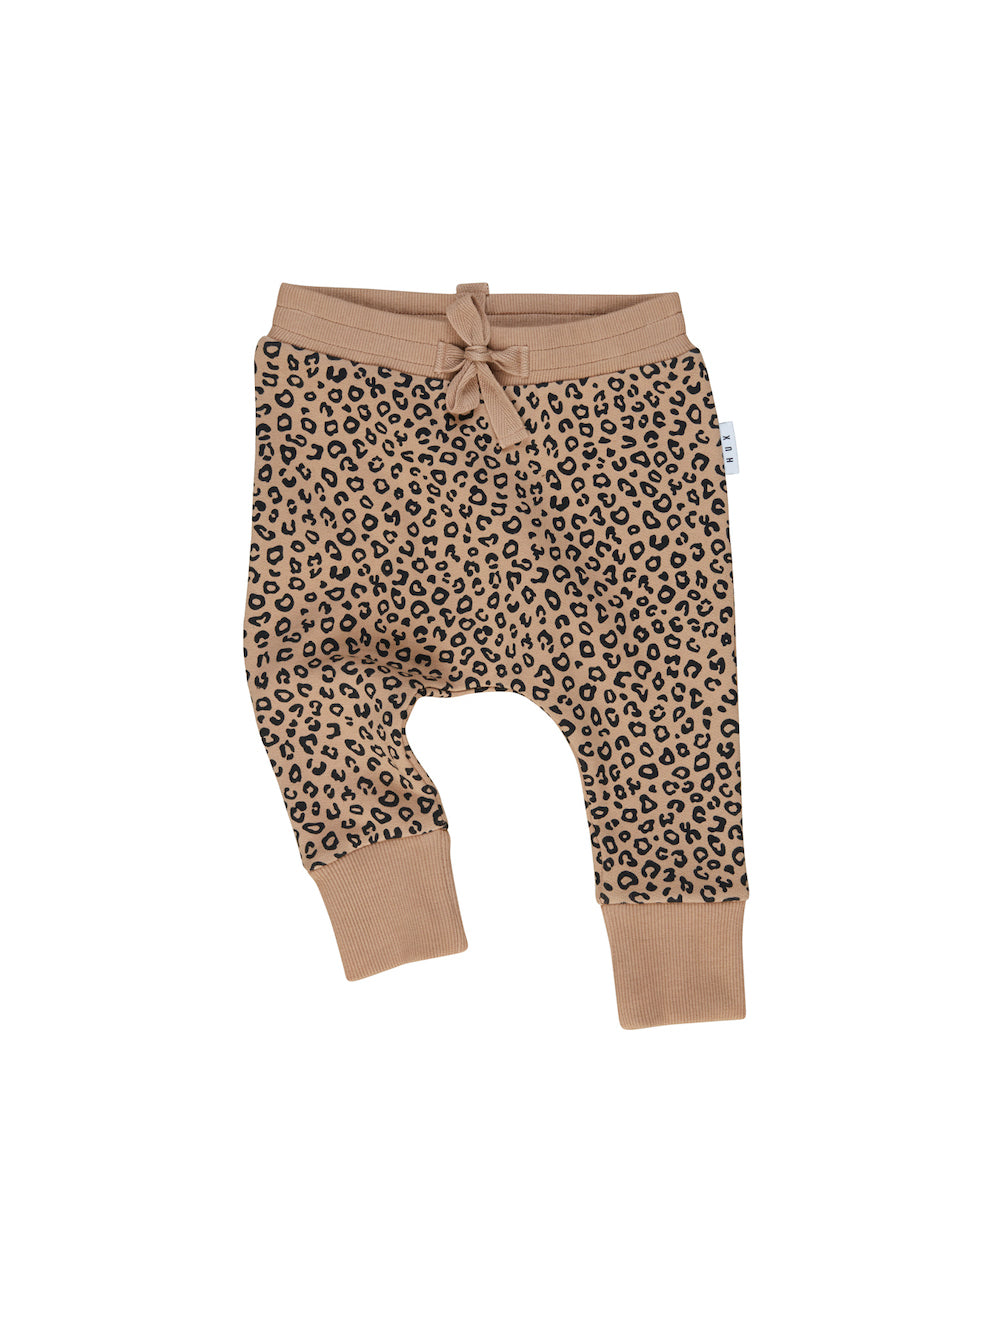 Huxbaby Animal Drop Crotch Print - Caramel